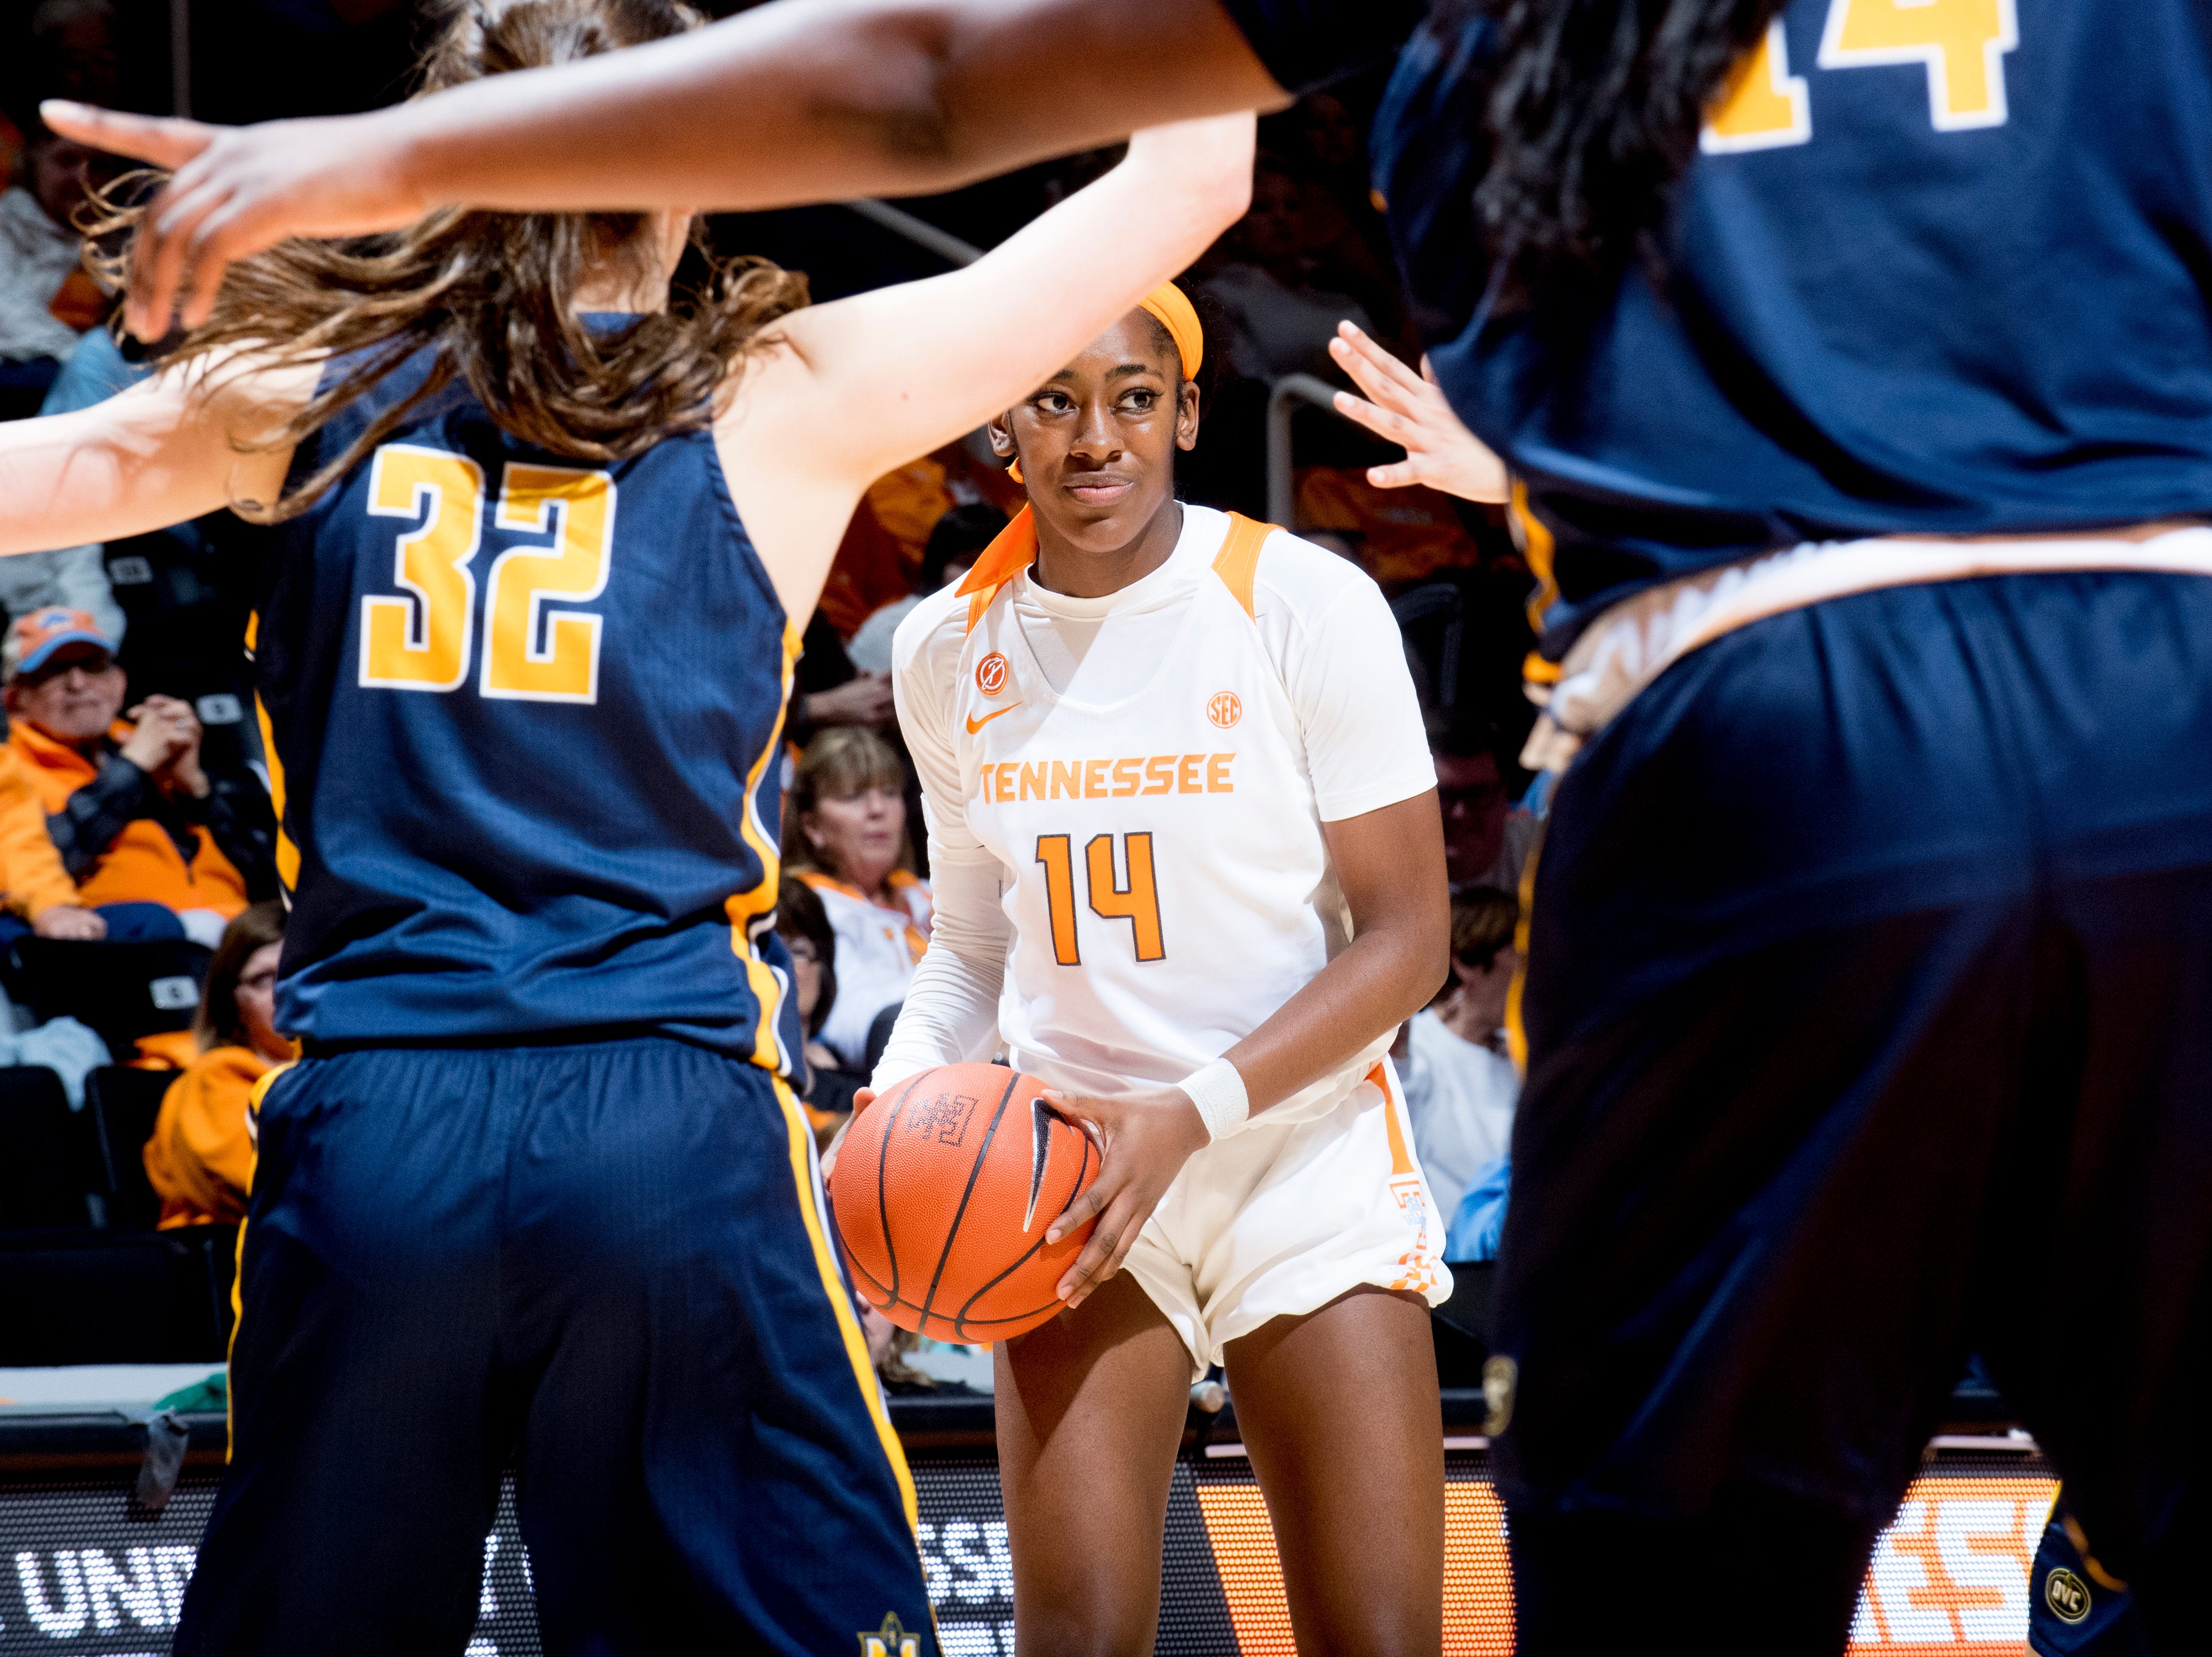 Tennessee guard Zaay Green (14) looks for a way through the defense during a game between the Tennessee Lady Vols and Murray State at Thompson-Boling Arena in Knoxville, Tennessee on Friday, December 28, 2018.